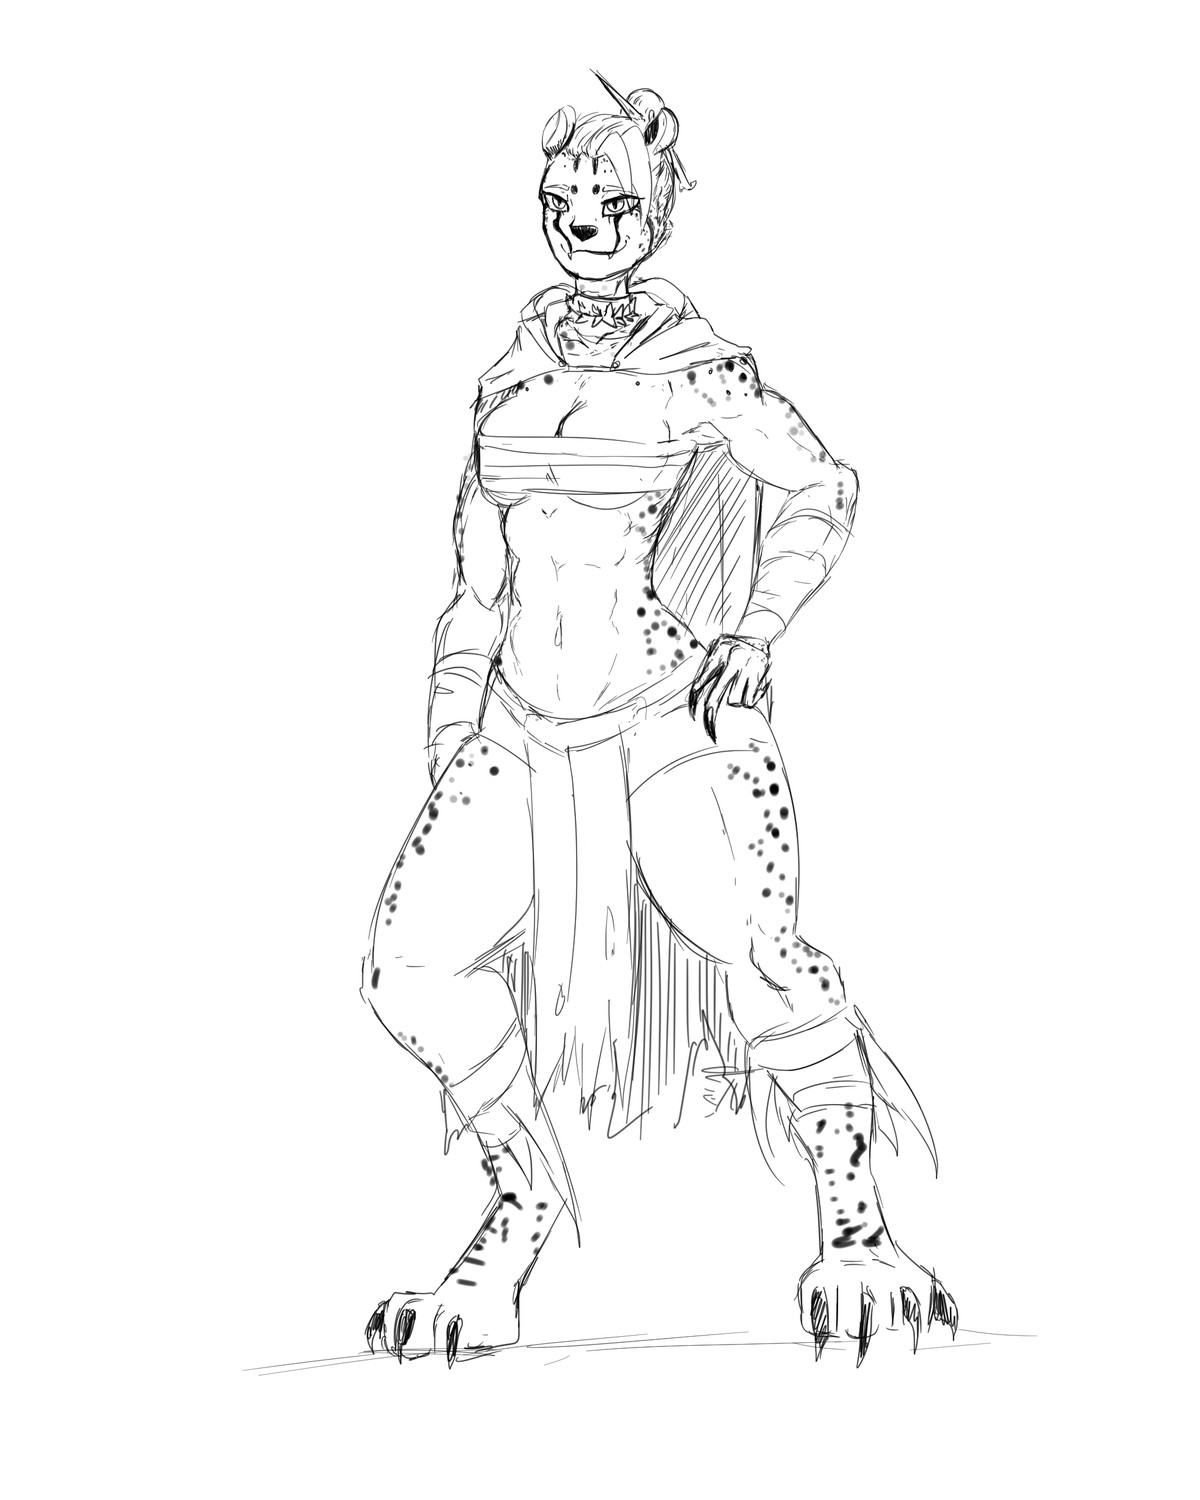 Cheeta girl for Dnd. join list: GBArt (261 subs)Mention History.. Is she a Tabaxi monk? I want to make Tabaxi monk because who would have 45 base speed at level 2 due to unarmored movement. Then dashing to 90 plus a bonus acti